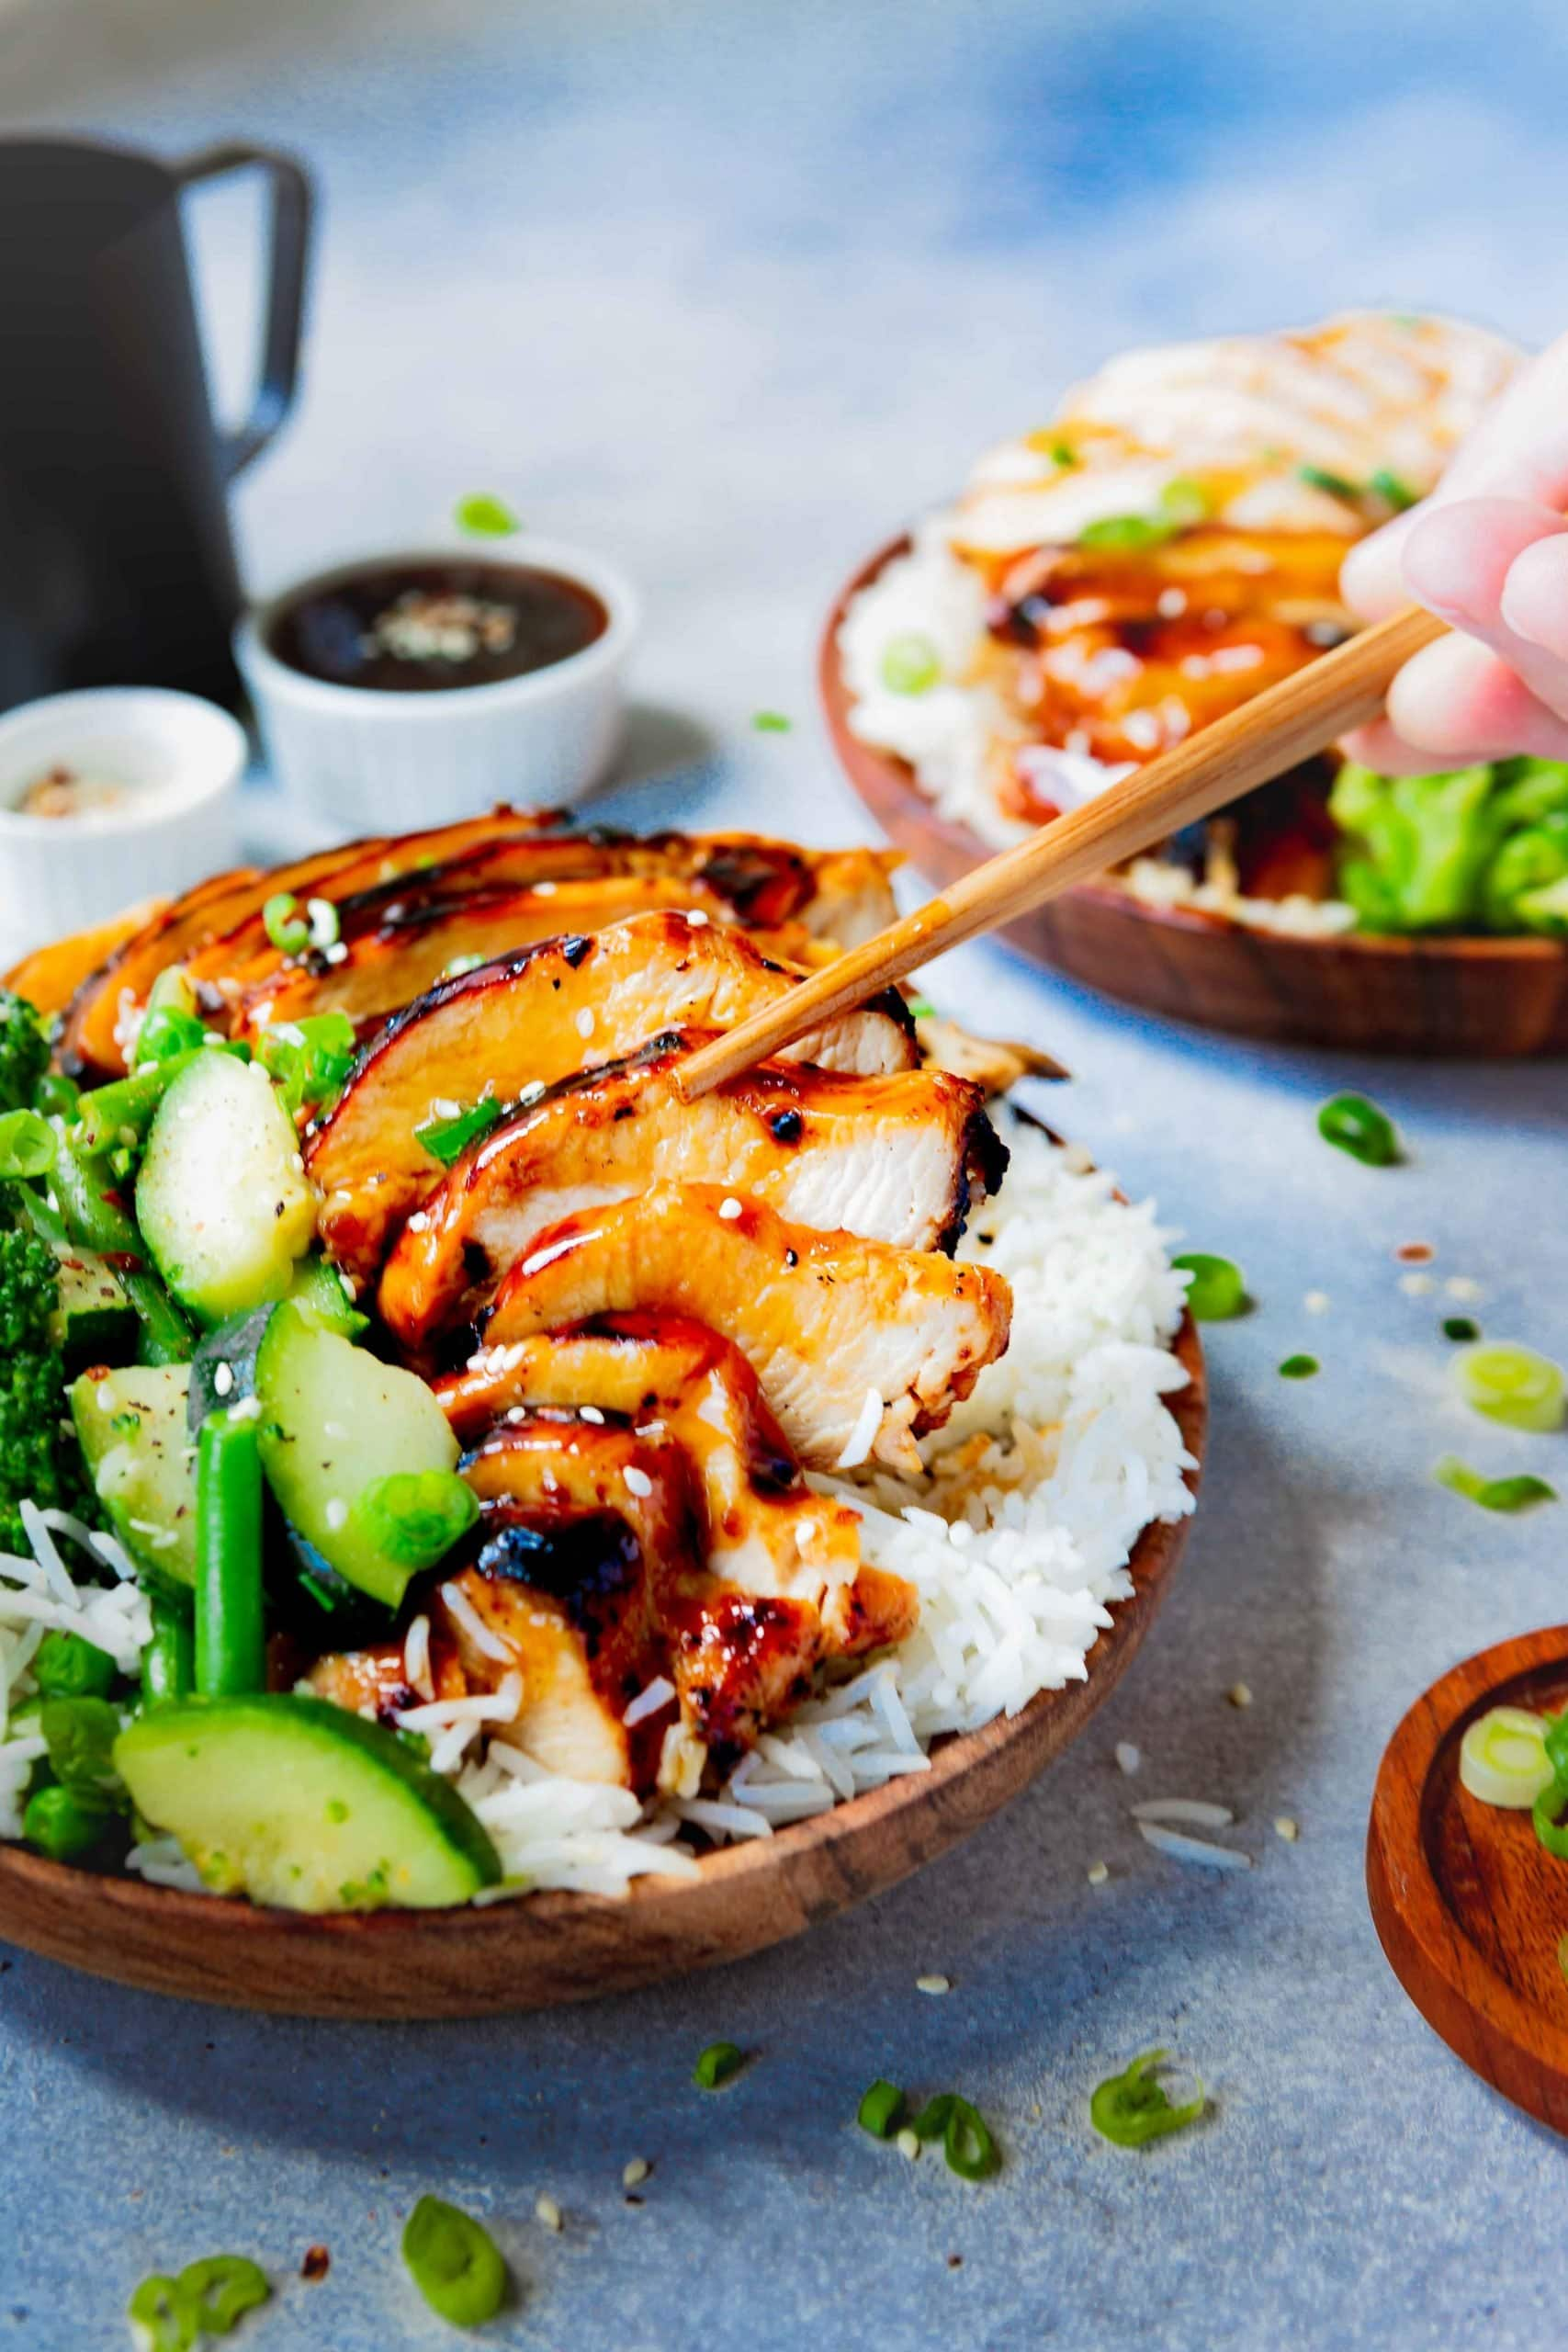 Picture of a plate of white rice topped with delicious teriyaki chicken and steamed green vegetables.  Someone is eating a piece of chicken with wooden chopsticks.